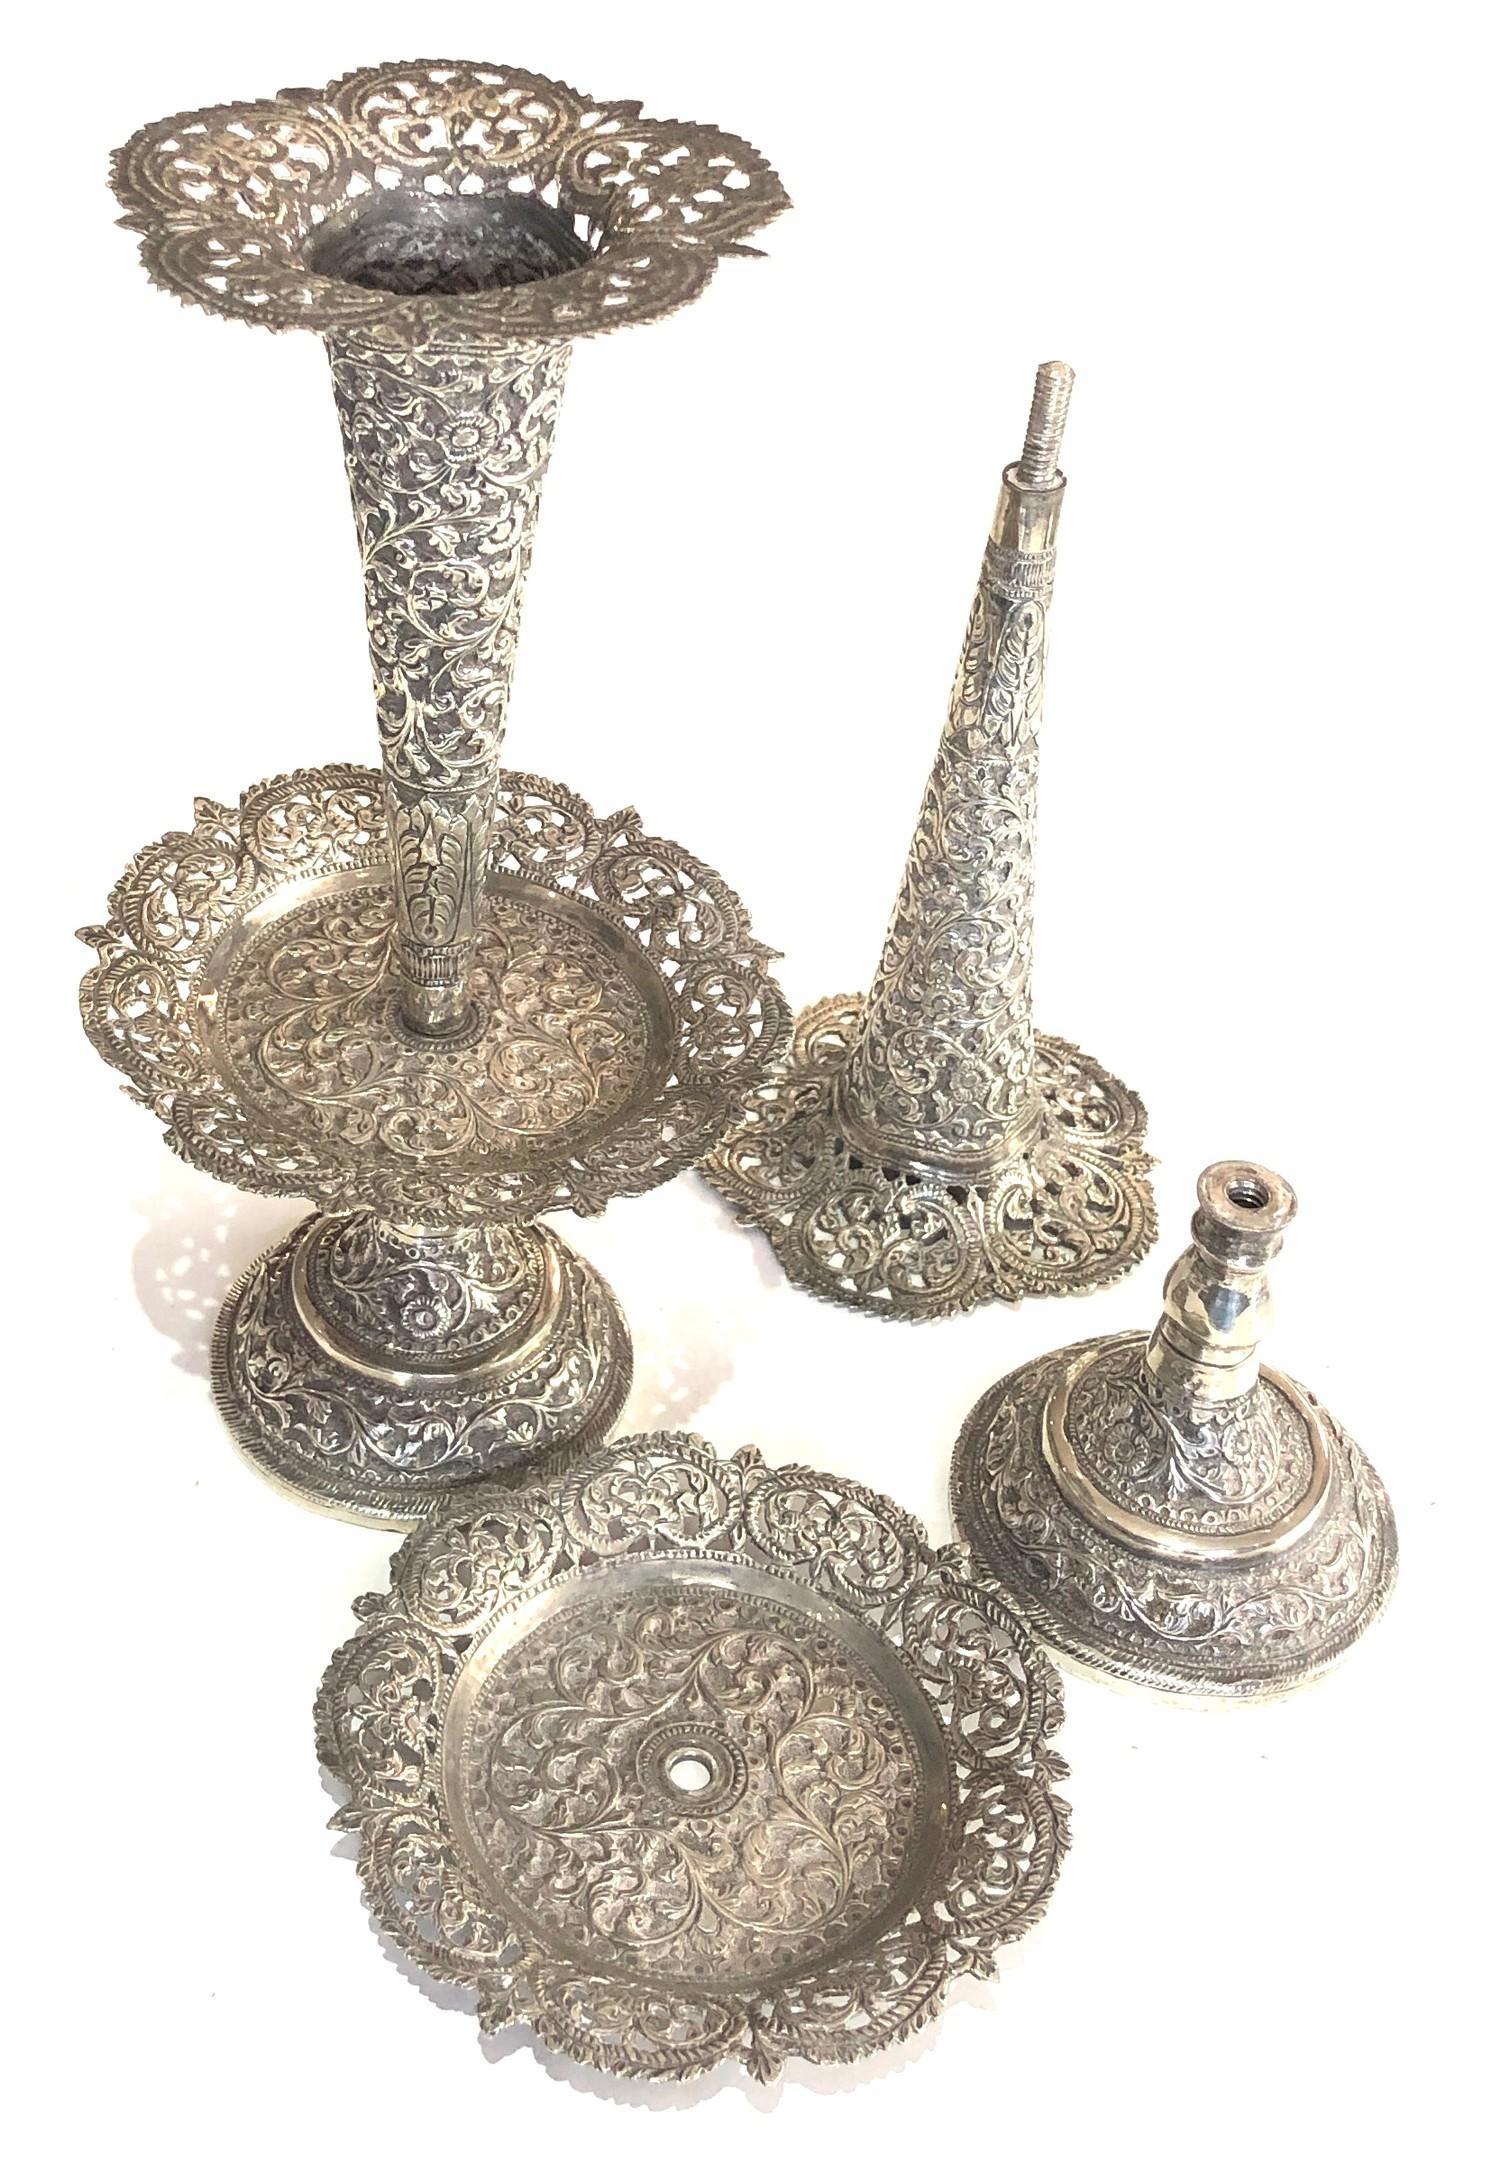 Fine Indian ornate Repousse floral vases each measures approx height 23cm filled bases total - Image 5 of 6